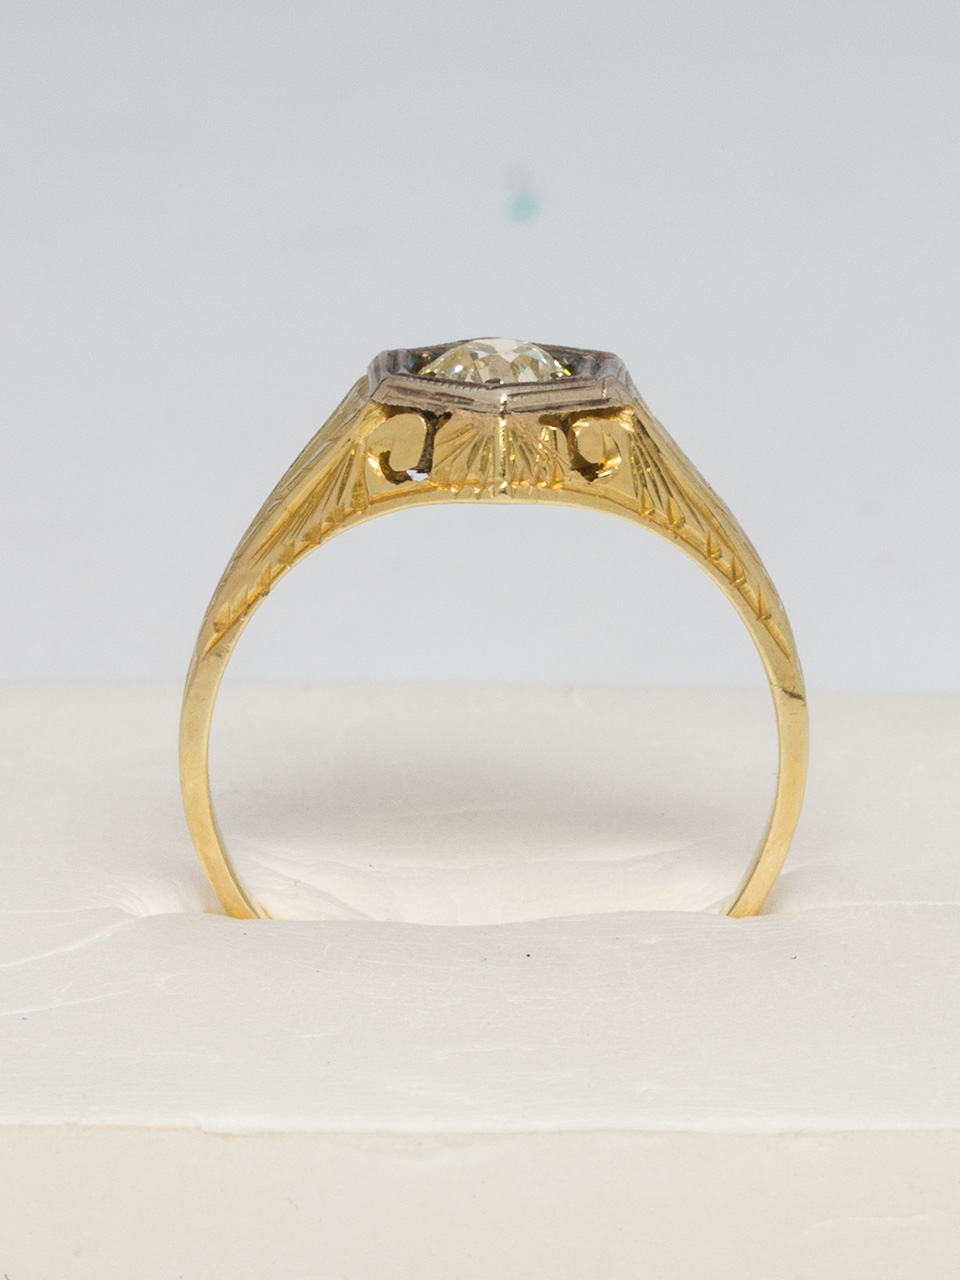 1930's 14K YG Hand Engraved Ring with 0.45ct Diamond